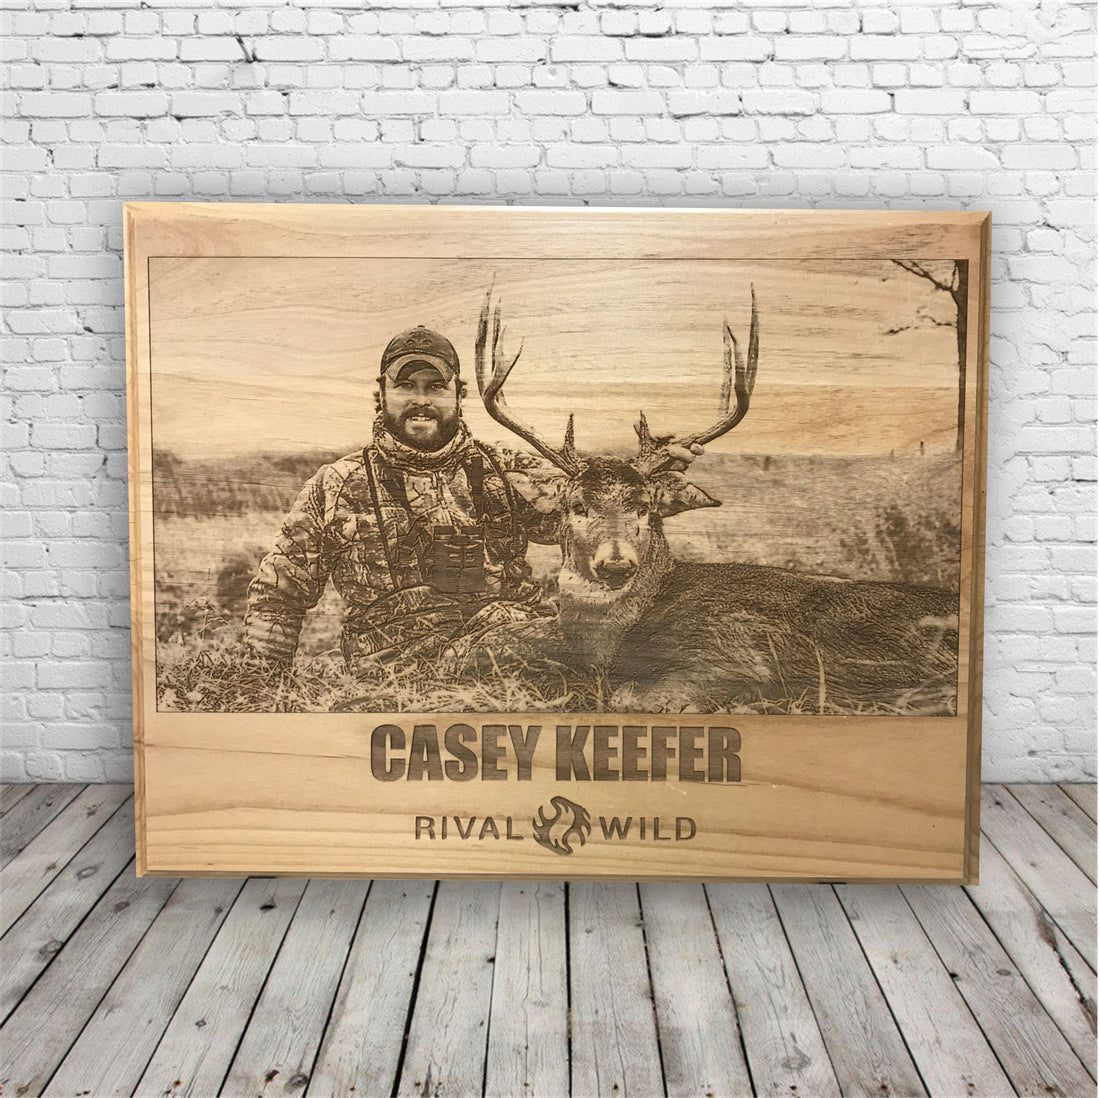 Hunting Photo Engraved on Wood Plaque